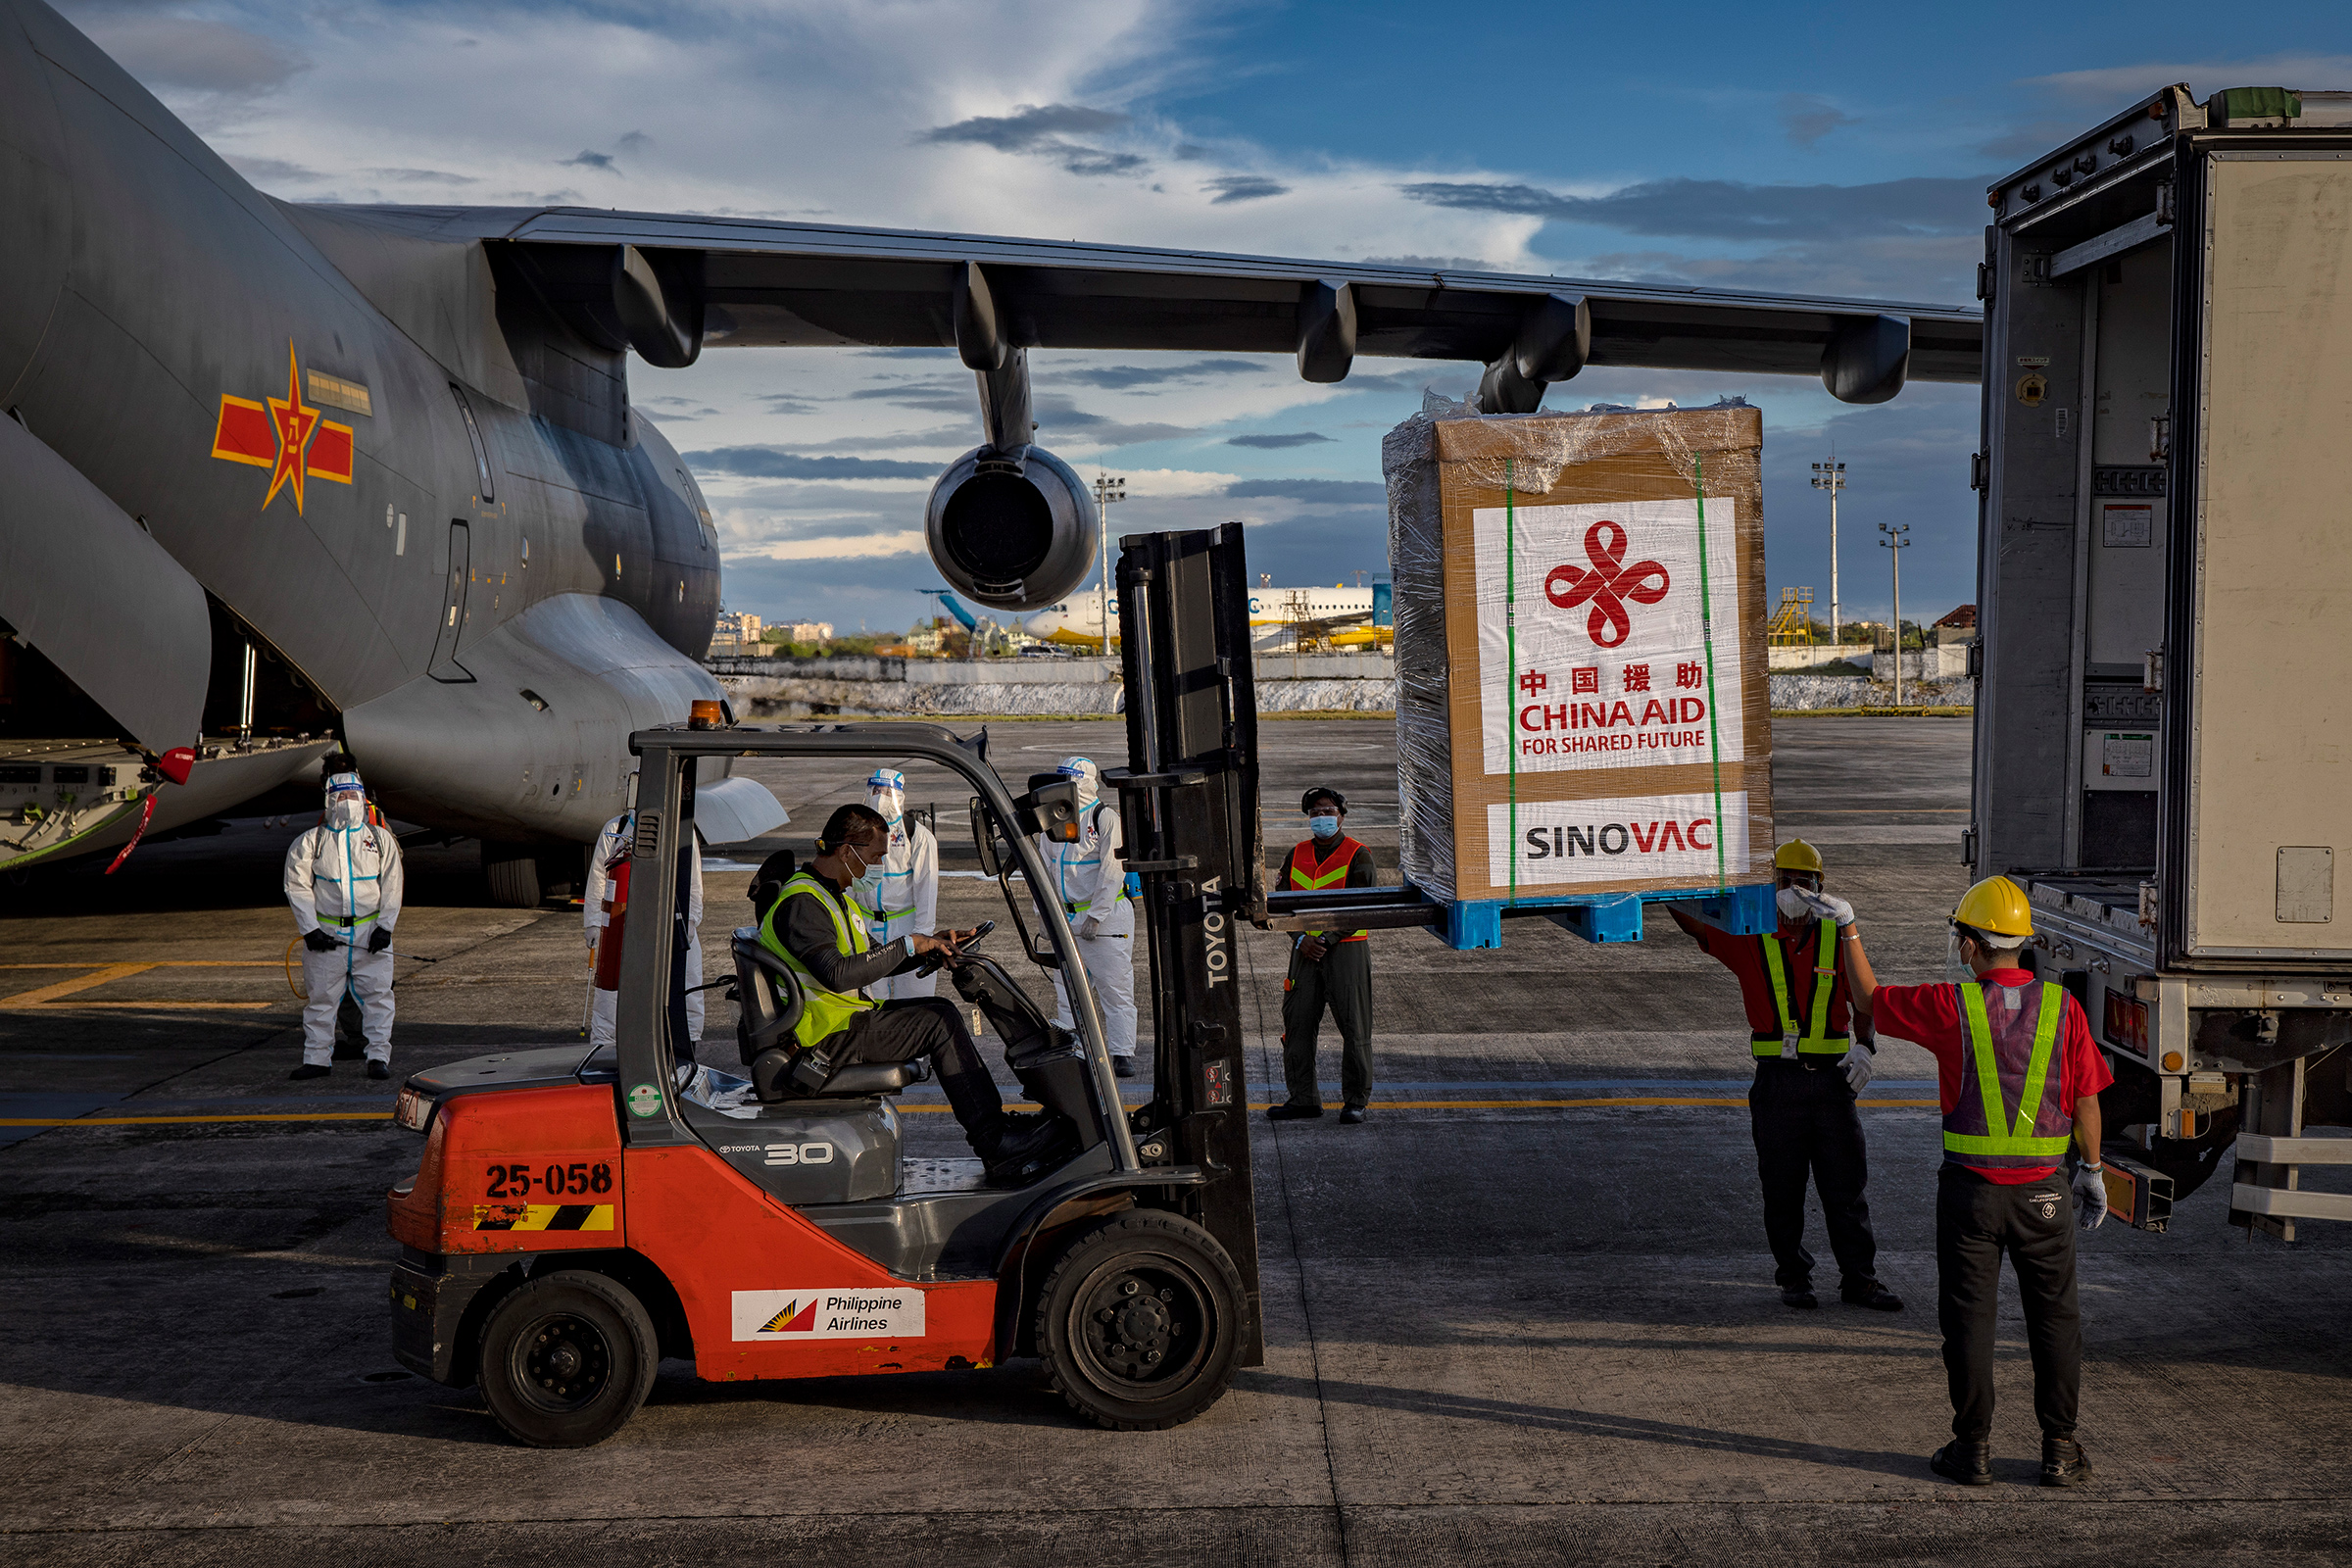 A crate containing Sinovac Biotech COVID-19 vaccines is loaded into a truck upon arriving at Ninoy Aquino International Airport on Feb. 28, 2021 in Manila. Sunday's delivery marks the first time the Philippines received official coronavirus vaccines, the last country in ASEAN to do so